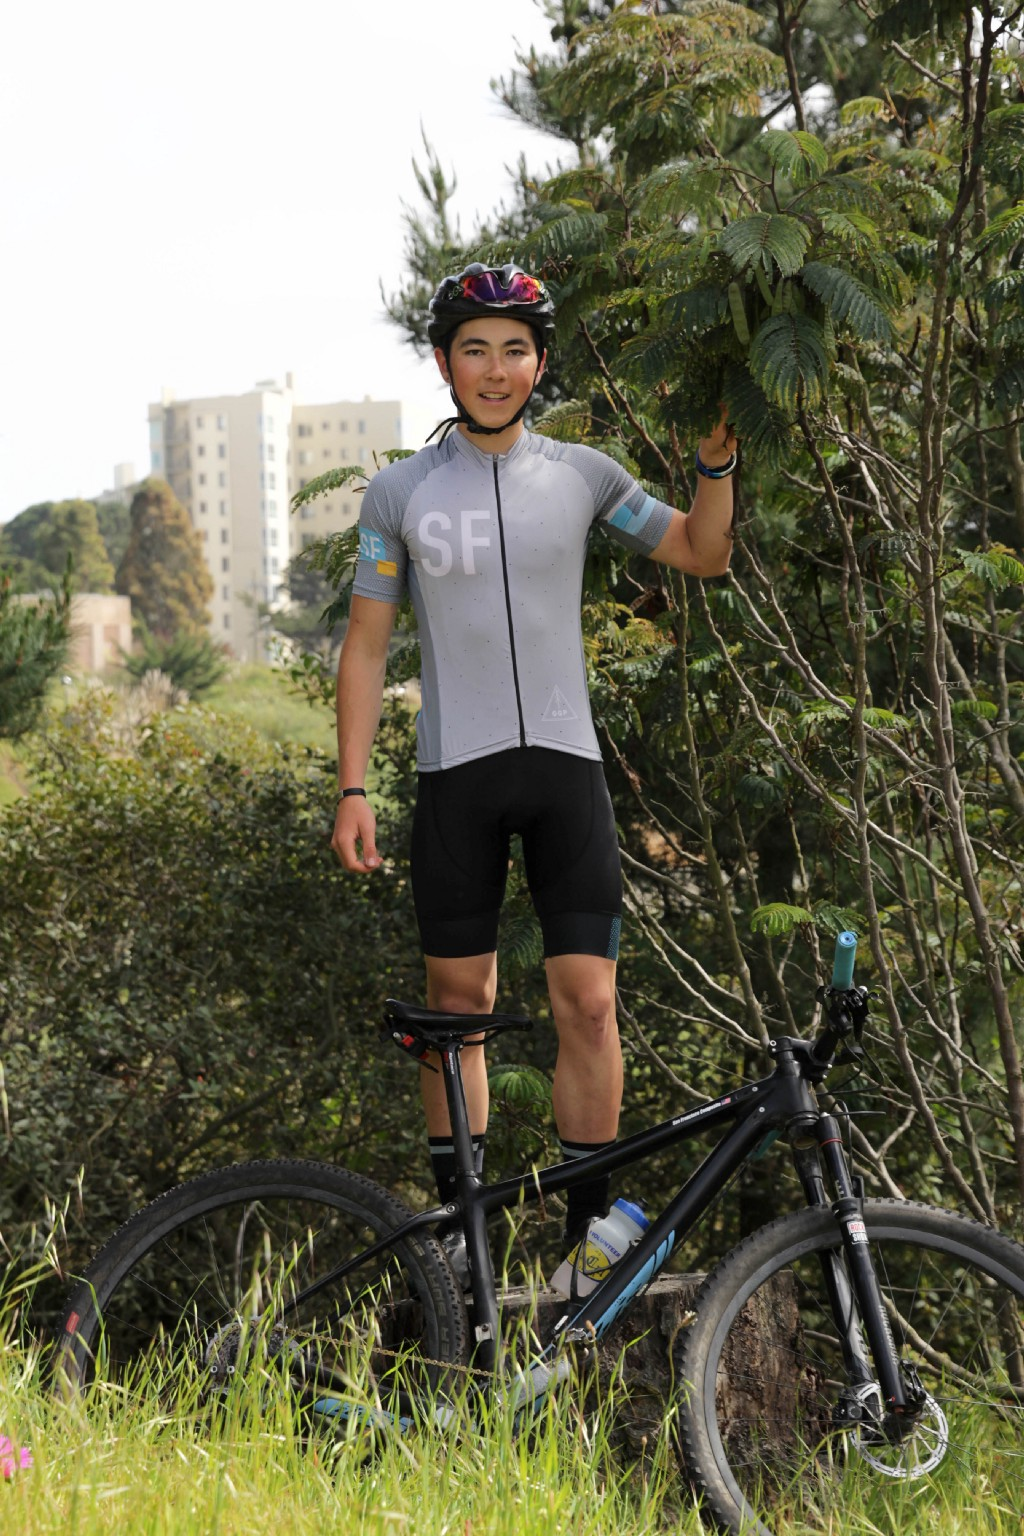 Senior Liam Gima-Lange is one of only two cross country mountain bike racers at Lowell.